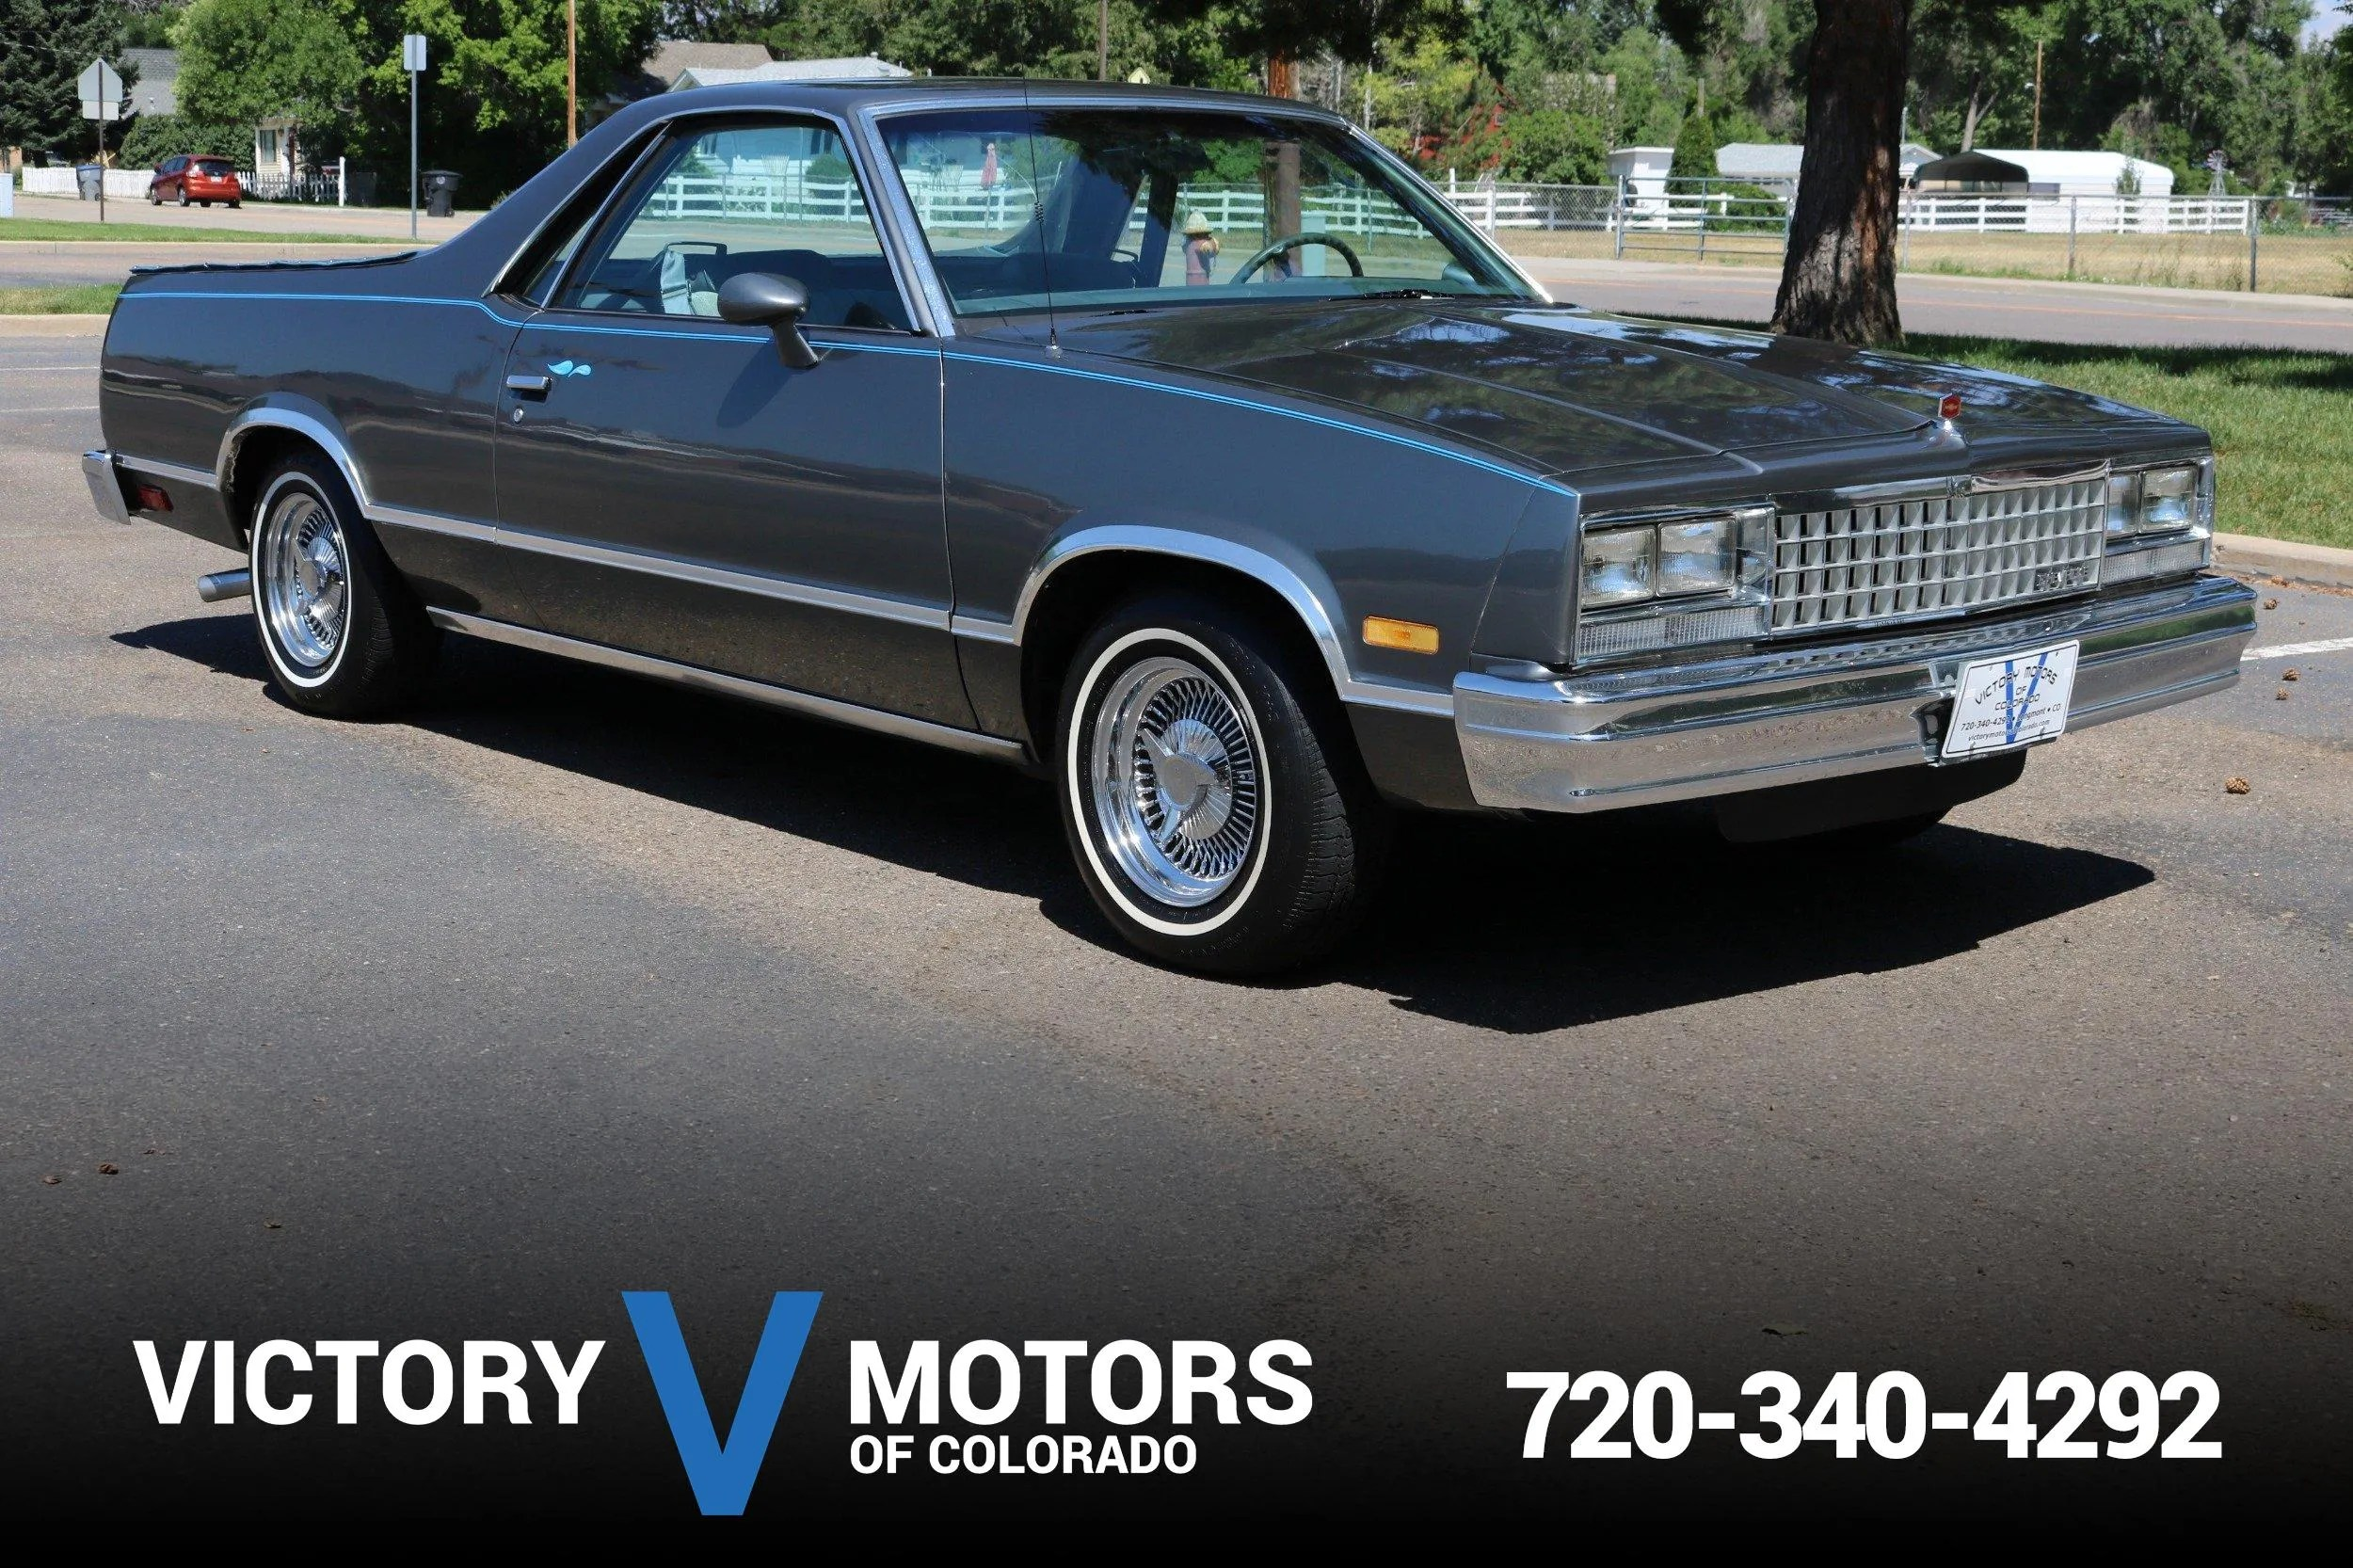 El Camino Gas Mpg 1985 Chevrolet El Camino Victory Motors Of Colorado